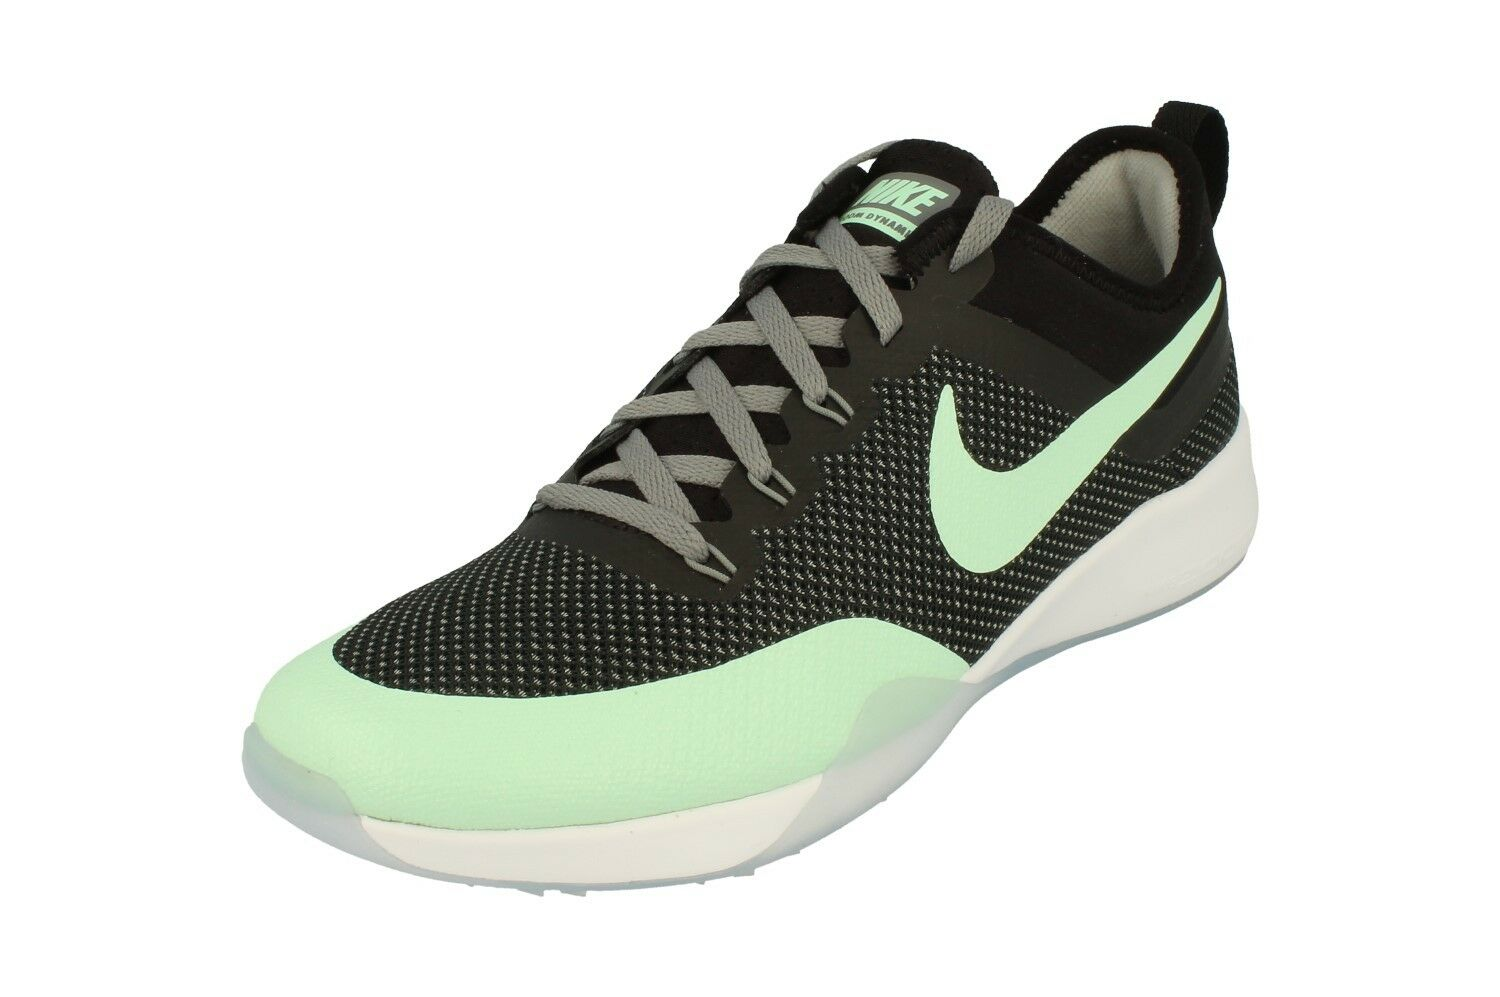 Nike Womens Air Zoom Tr Dynamic Running Trainers 849803 Sneakers Shoes 009